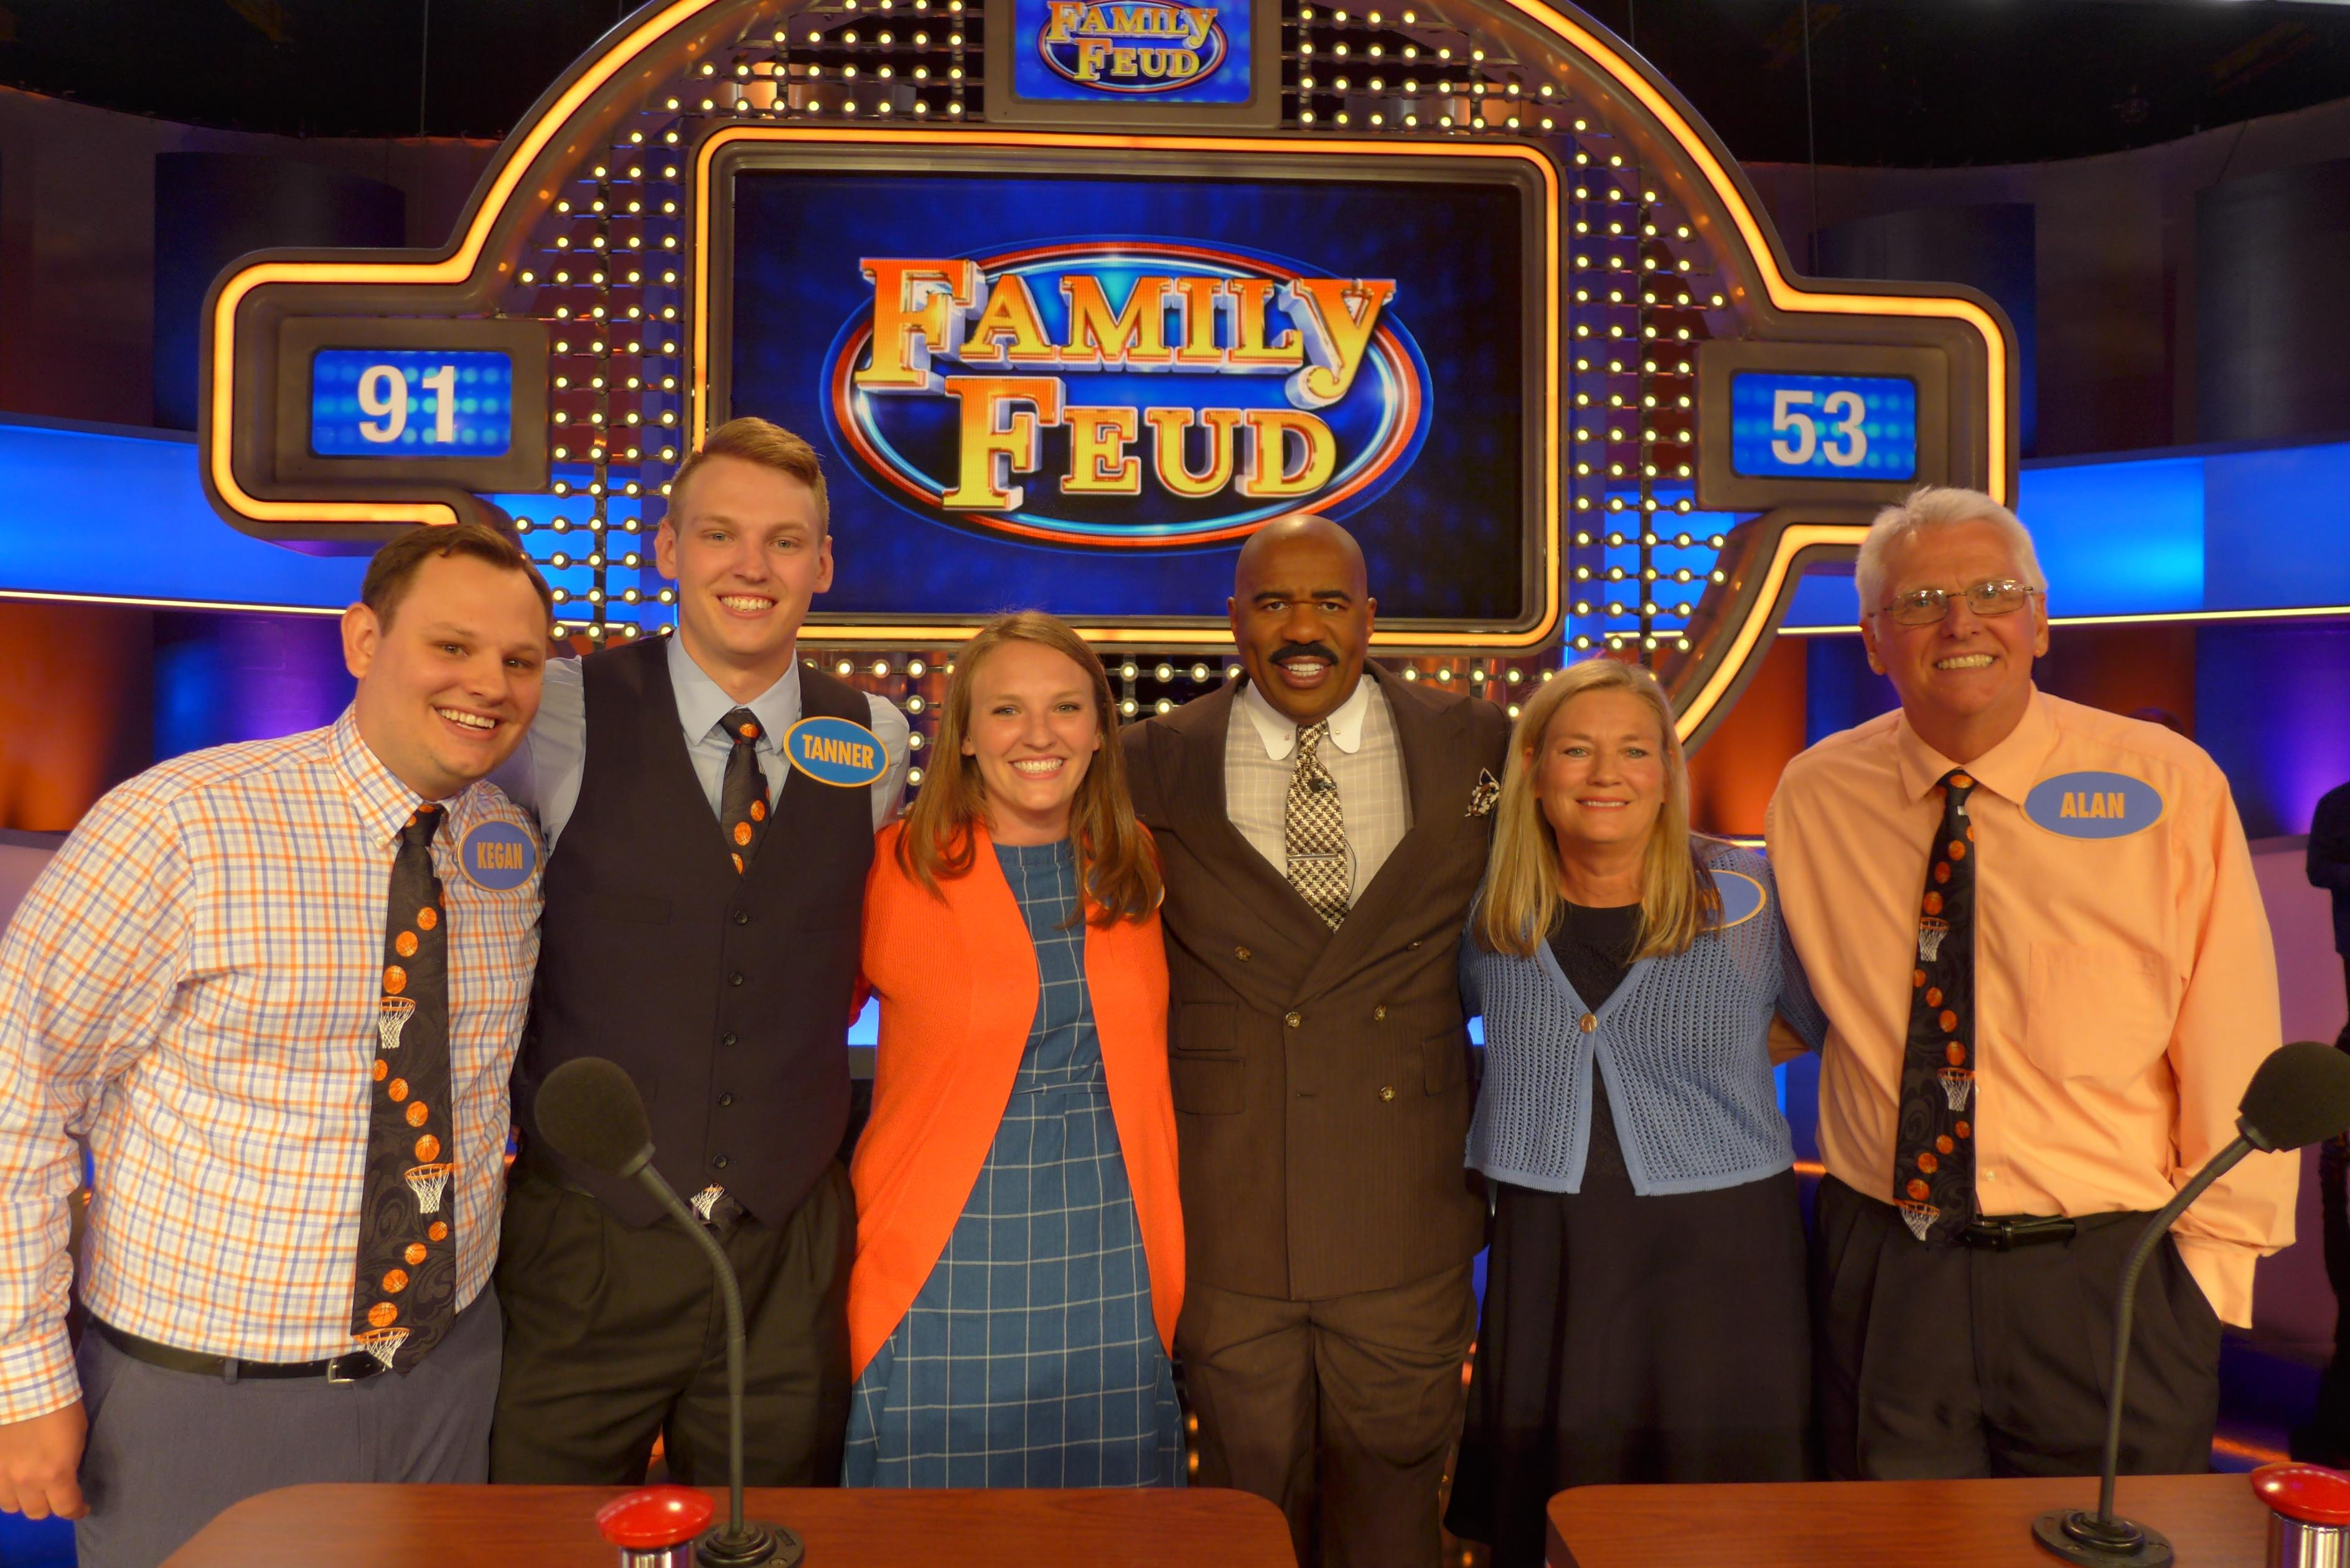 <p>Slinger's Schieve Family to appear on FAMILY FEUD April 22nd at 6:30pm on CW18.</p><p>Photo Credit: Debmar-Mercury</p>